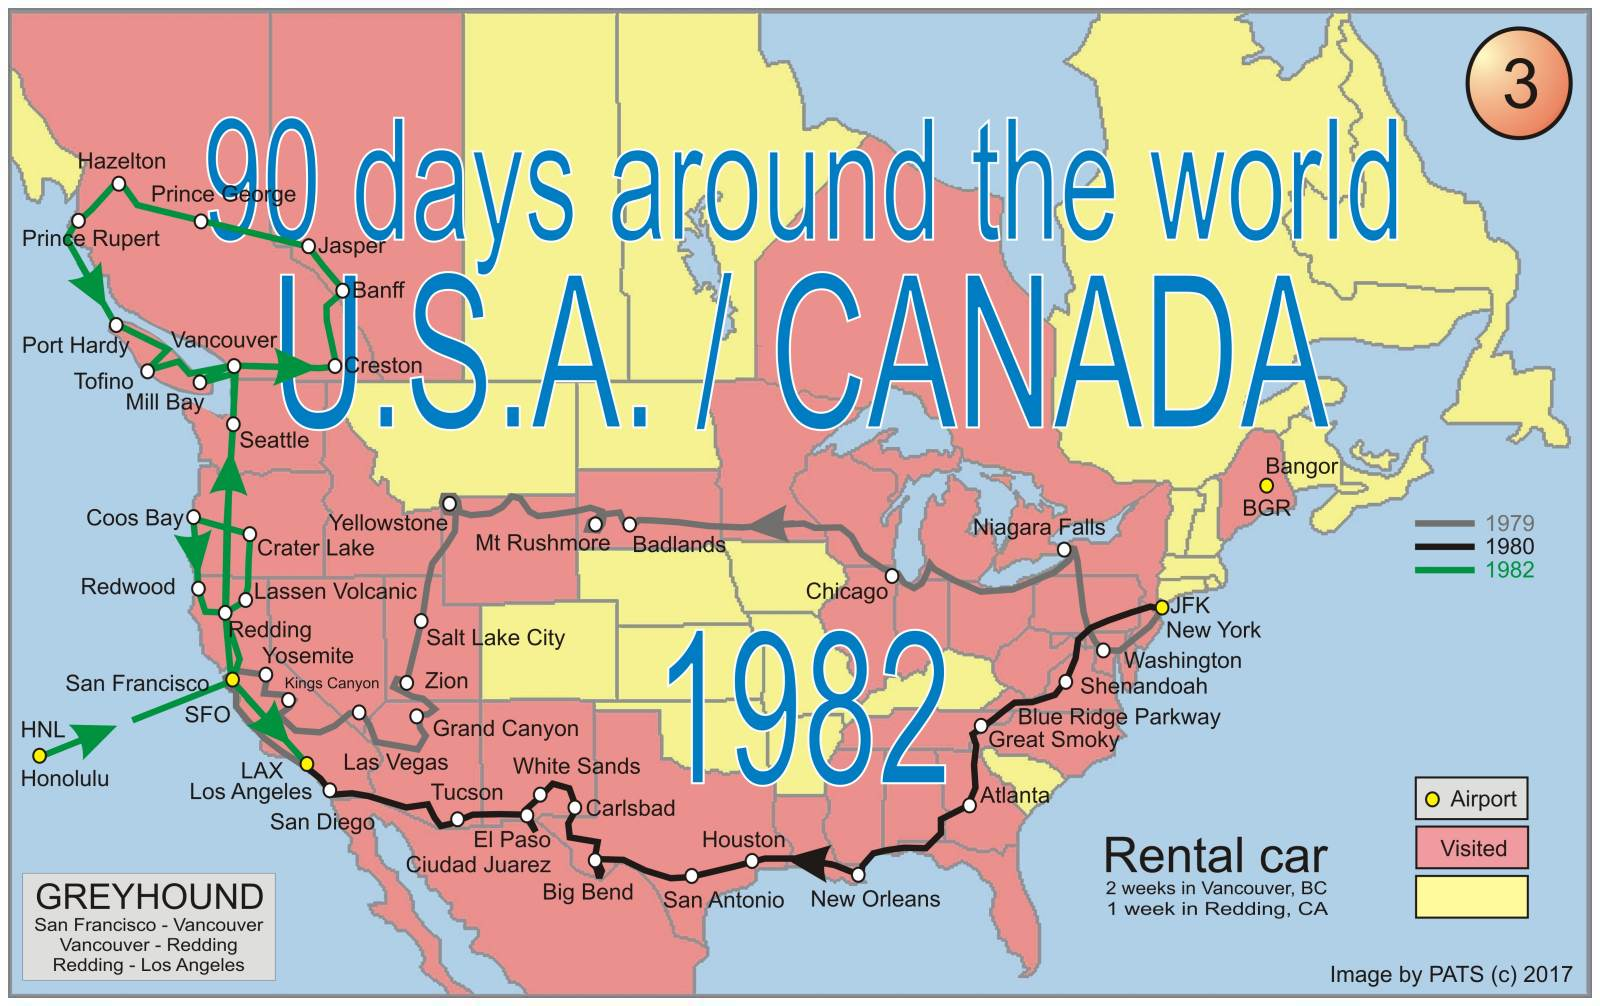 1982 - 90 days - Round the World - U.S.A. / CANADA